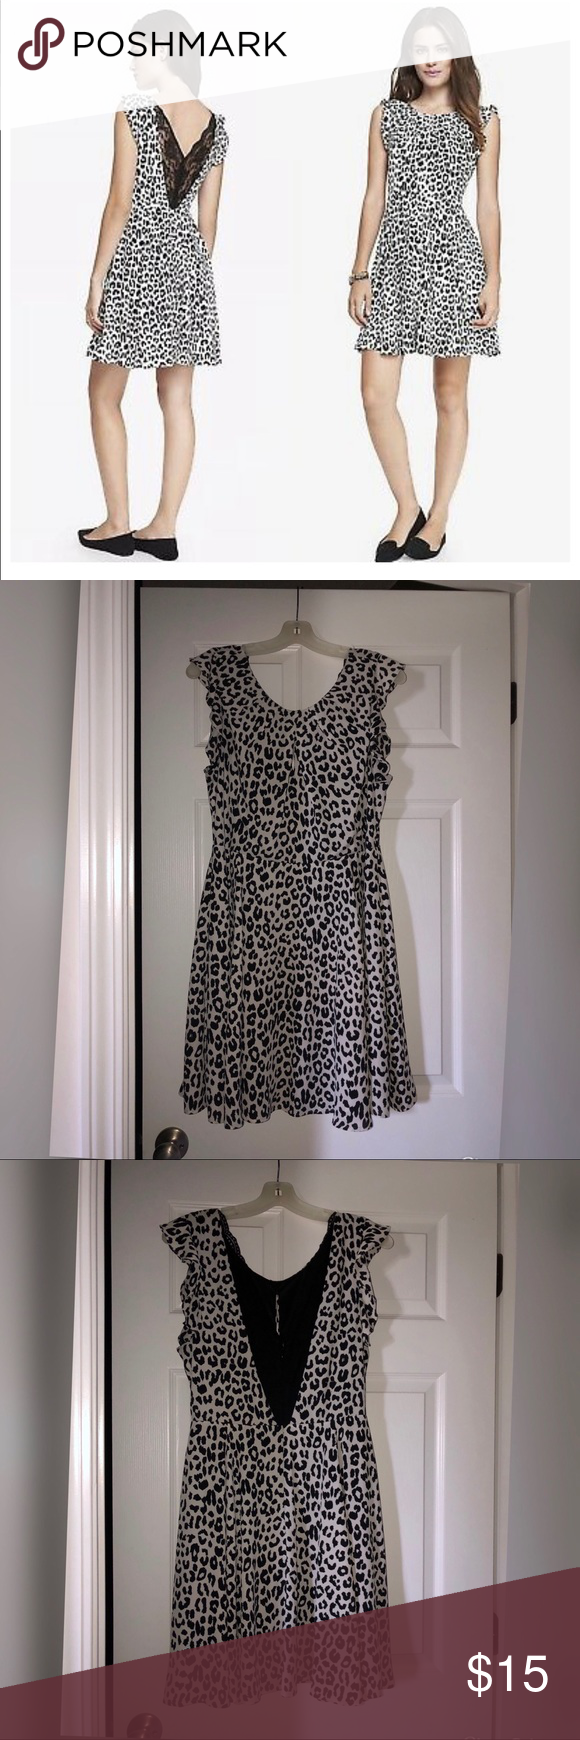 Express Black And White Leopard Print Dress Fit And Flare And Zips Up The Back I Do Not Know The Size Of This D Leopard Print Dress Print Dress Clothes Design [ 1740 x 580 Pixel ]